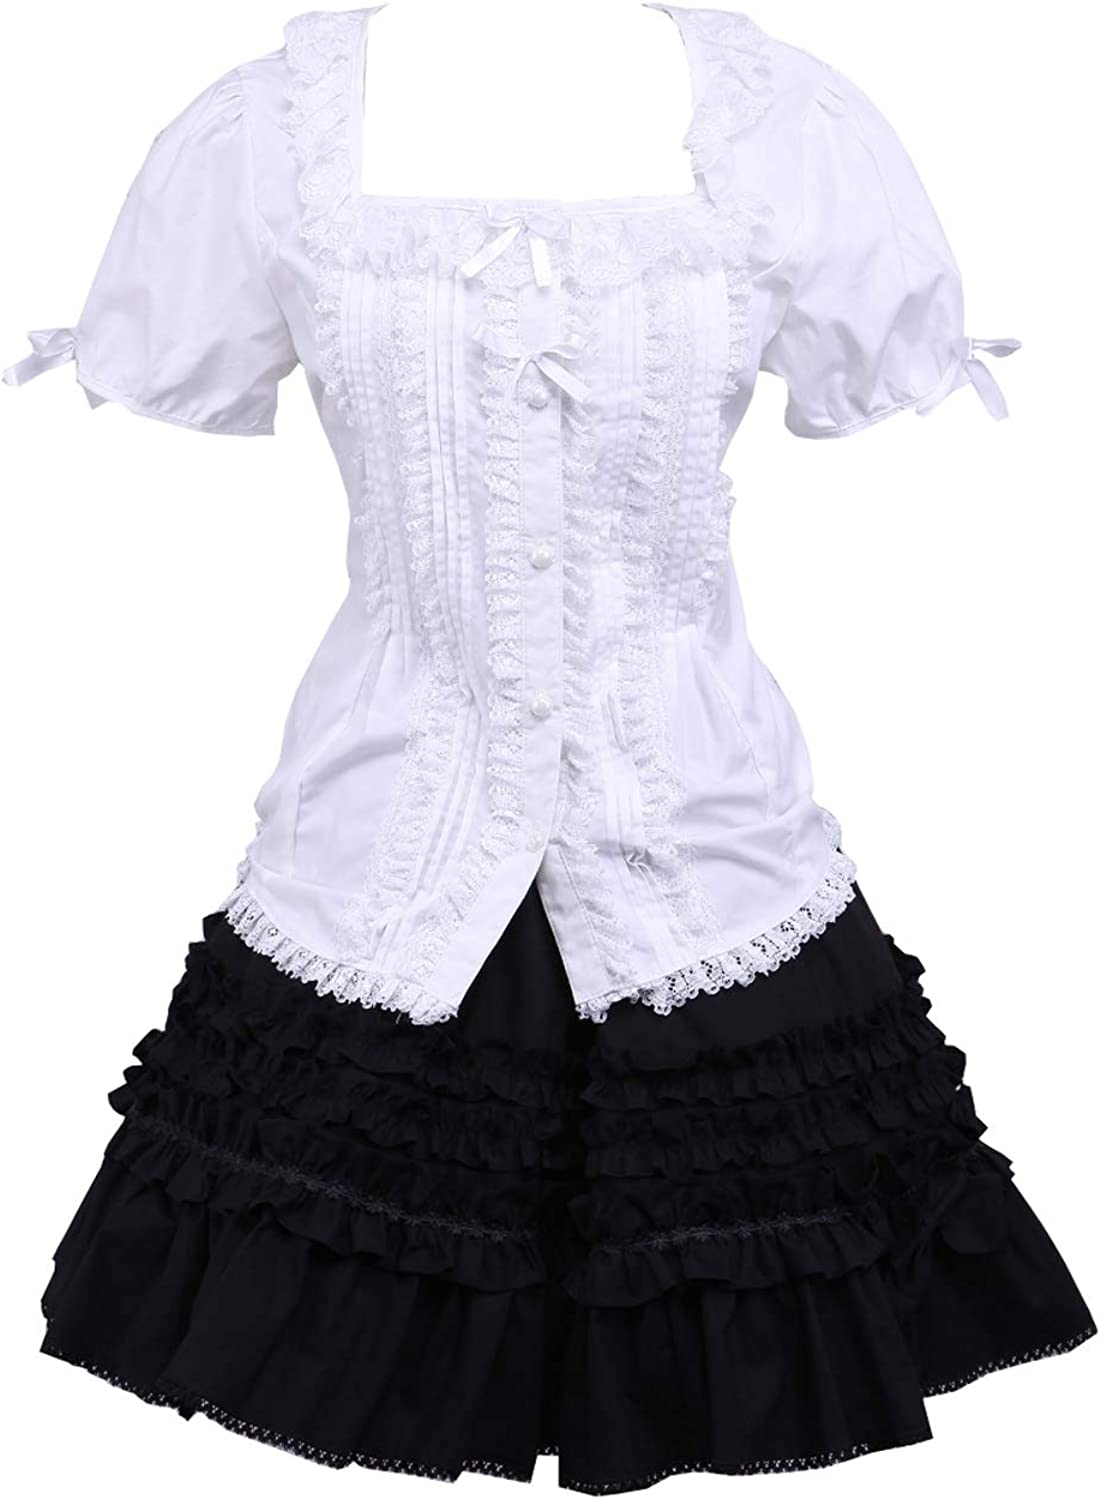 Antaina White Cotton Puff Victorian Blouse and Black Pleated Lace Lolita Skirt